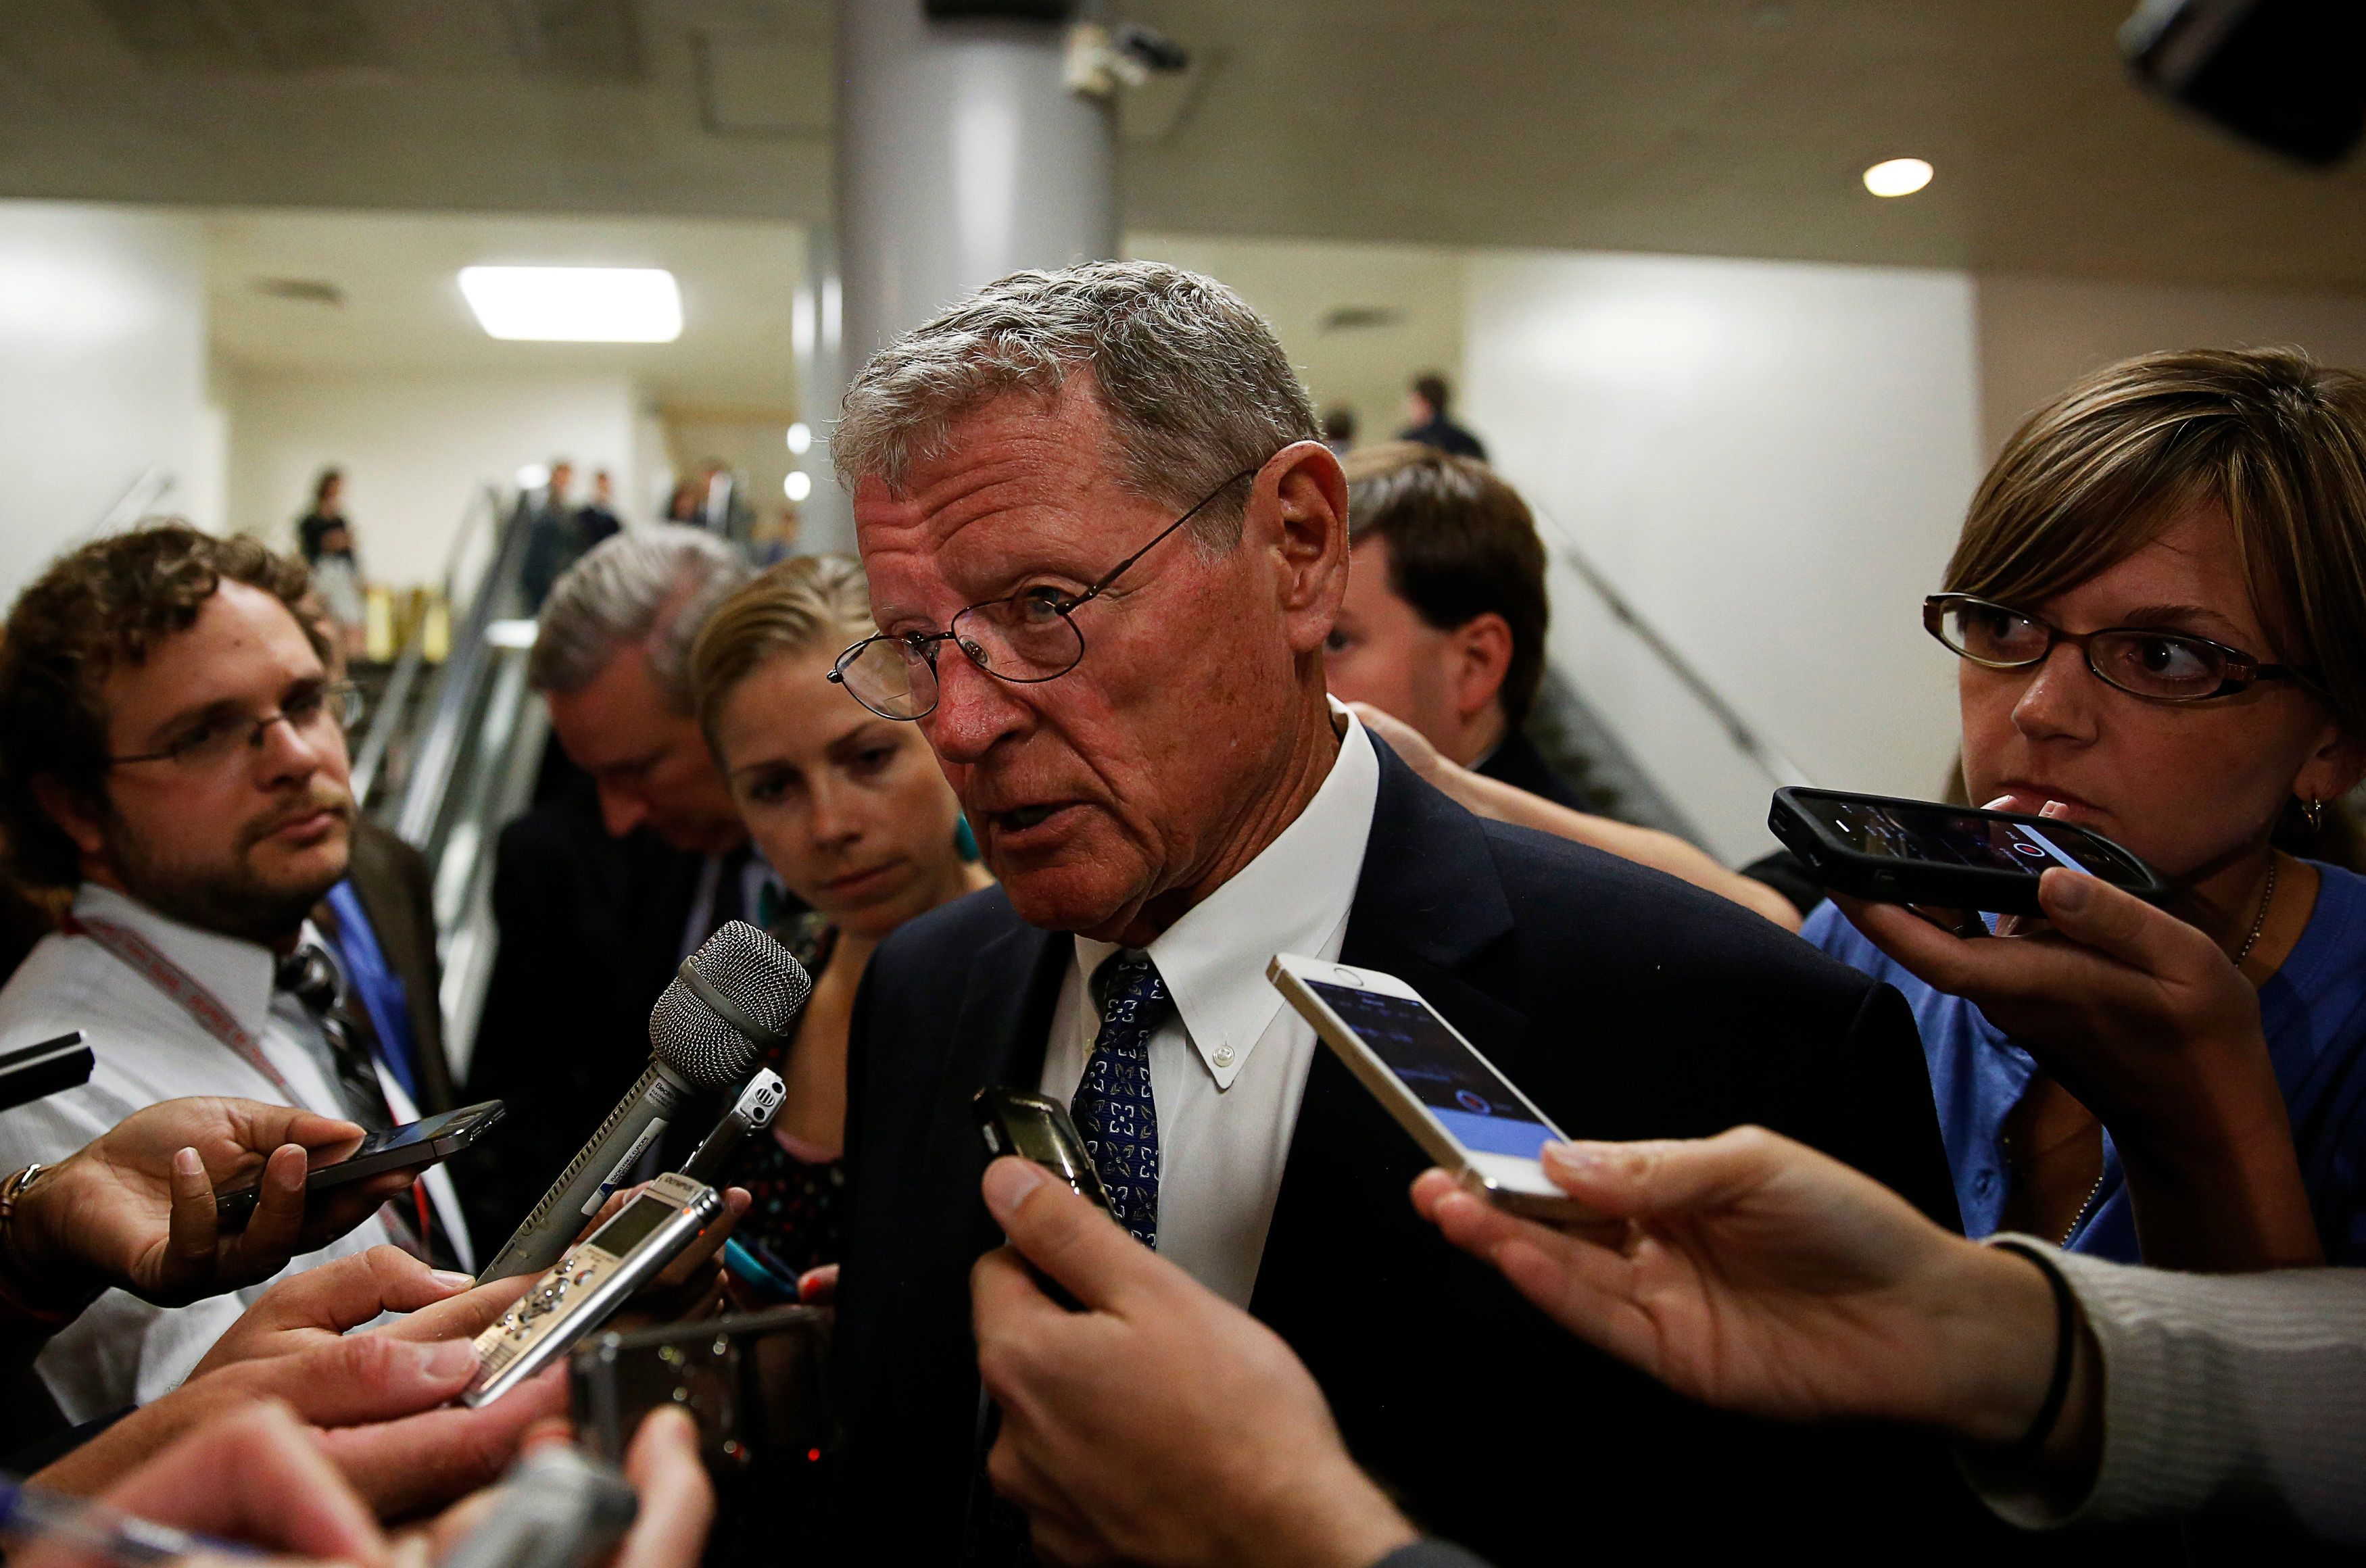 Senate Armed Services Committee ranking member Senator James Inhofe (R-OK) (C) talks to media after departing a closed hearing on Iraq and Afghanistan in Washington July 8, 2014.   REUTERS/Gary Cameron   (UNITED STATES - Tags: POLITICS MILITARY)